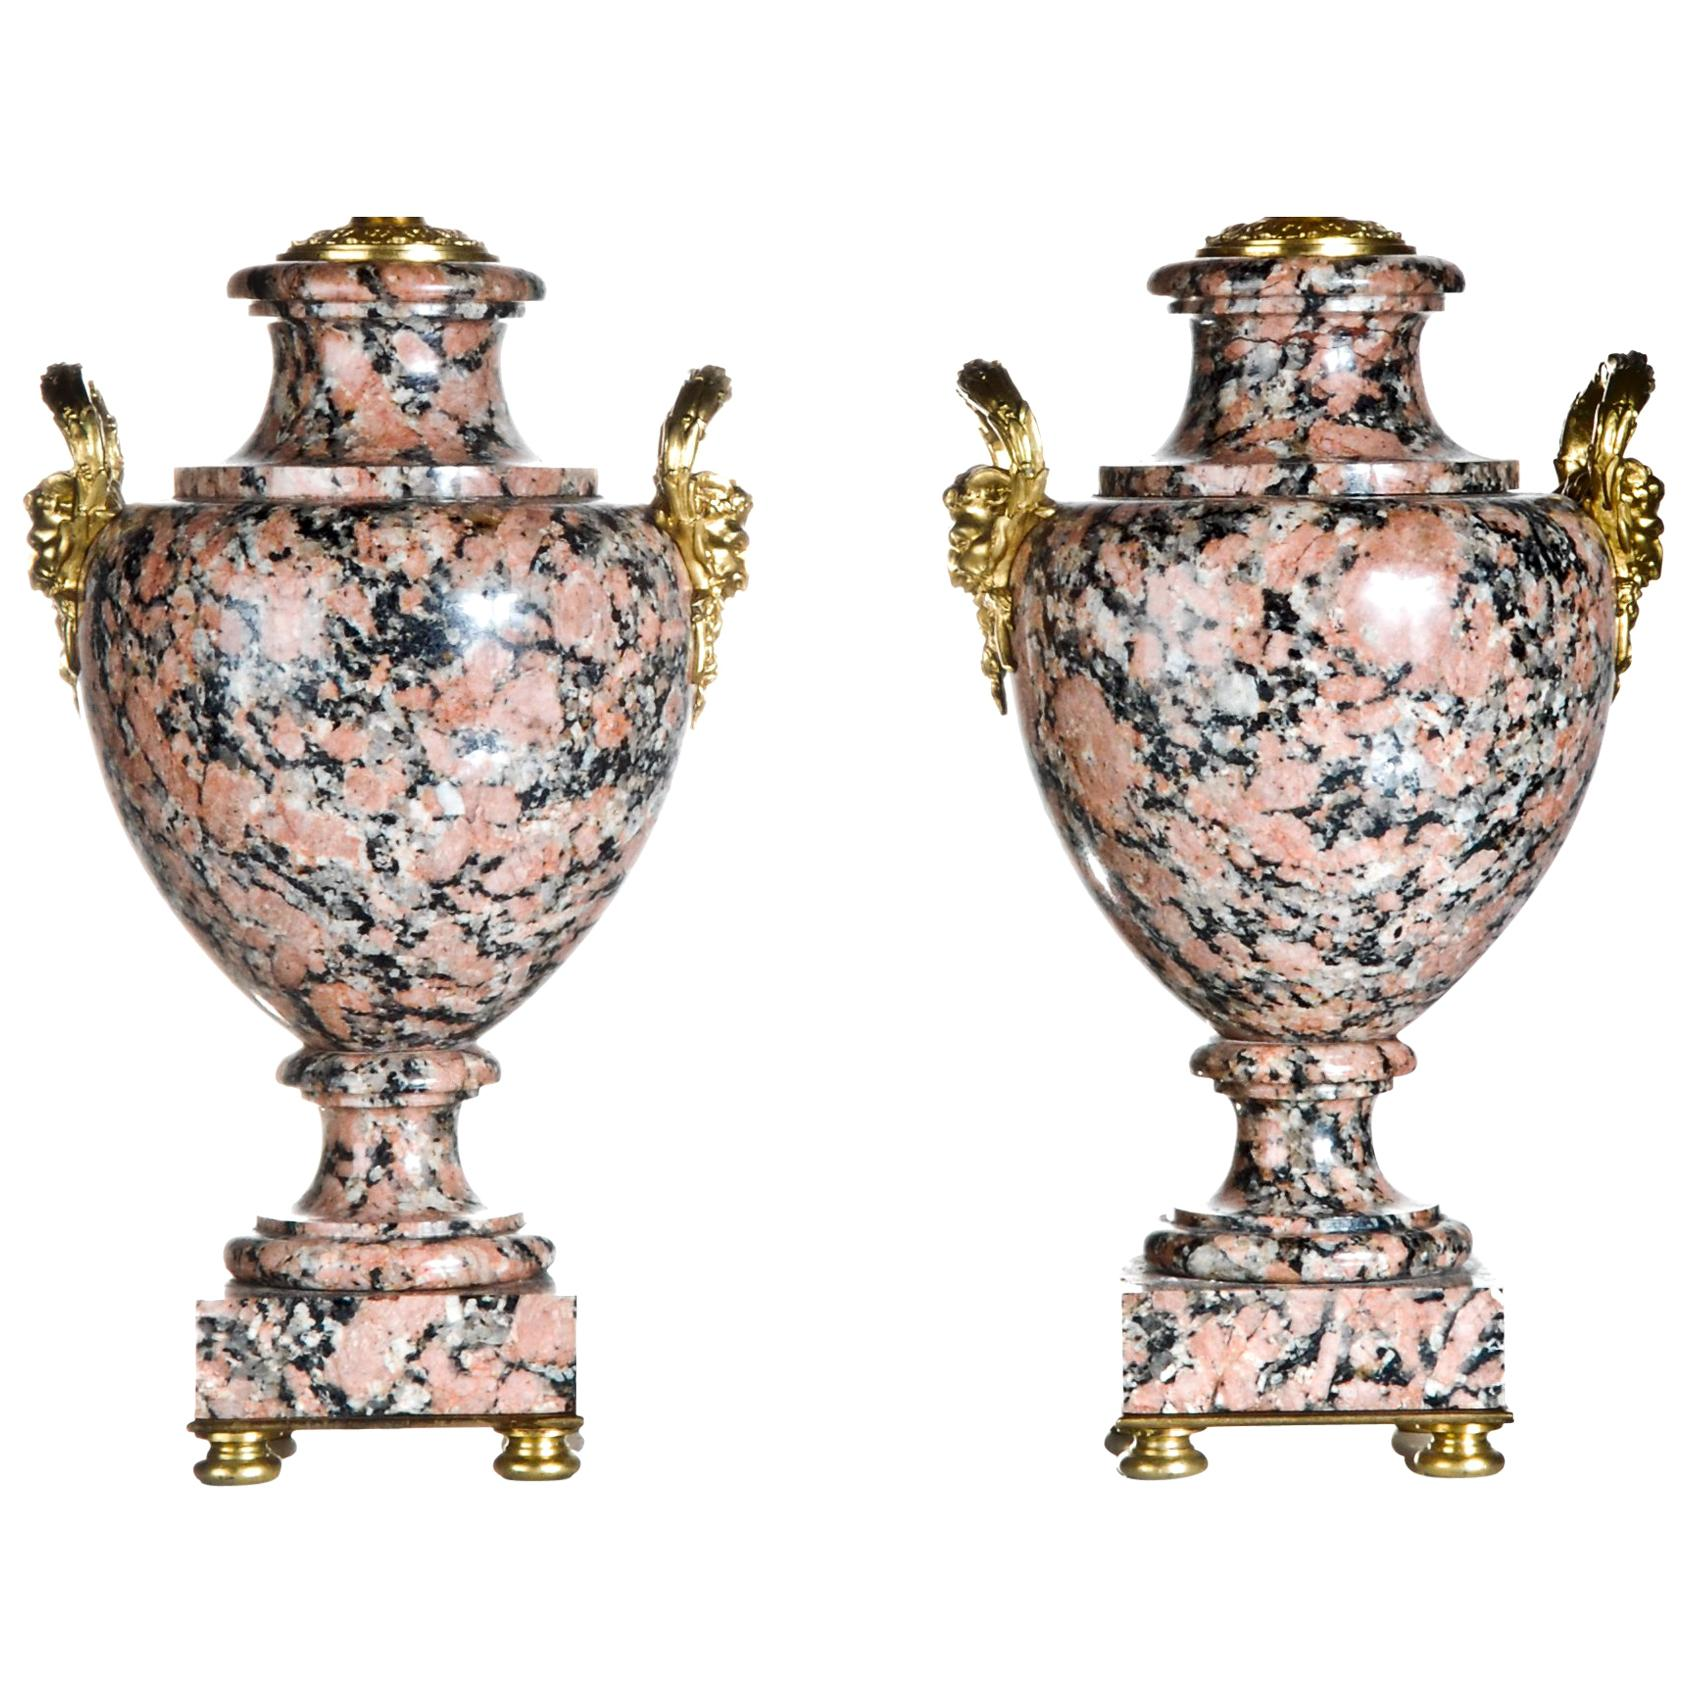 Pair of French Louis XVI Style Urn Form Gilt Bronze Mounted Granite Lamps